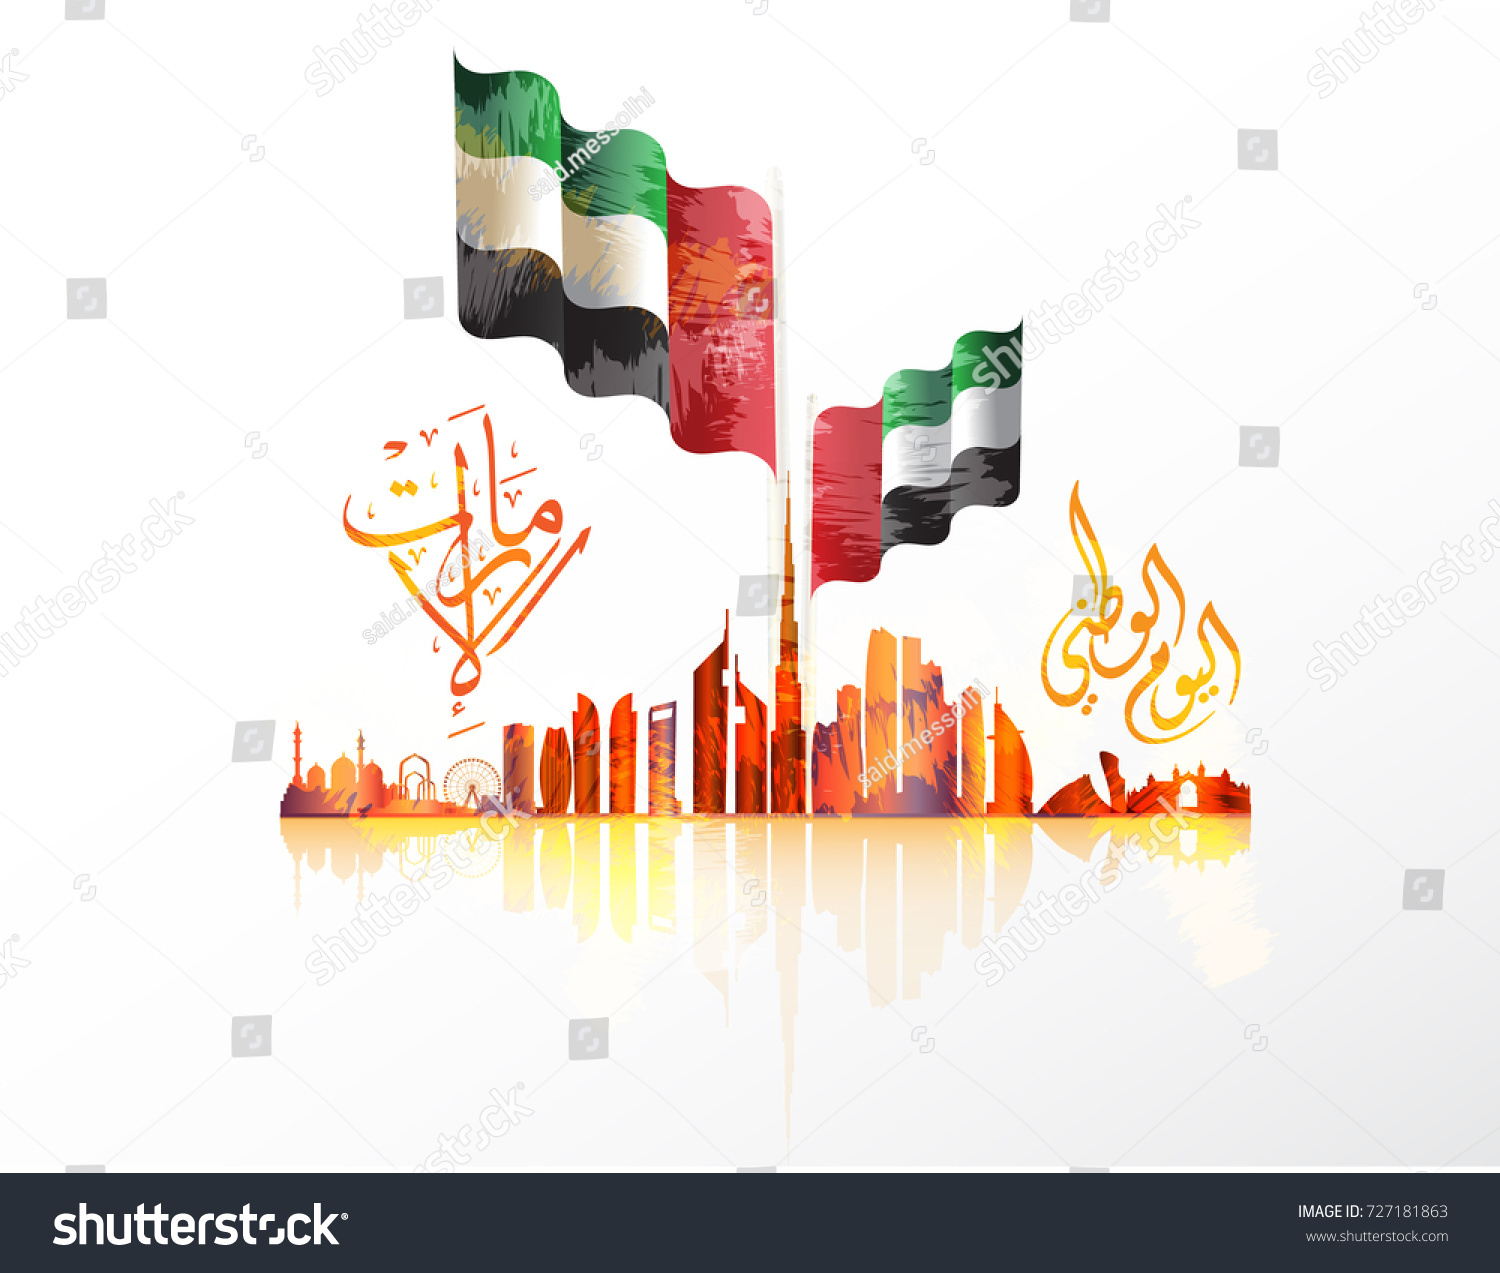 Uae National Day Quotes: United Arab Emirates National Day Holiday Stock Vector